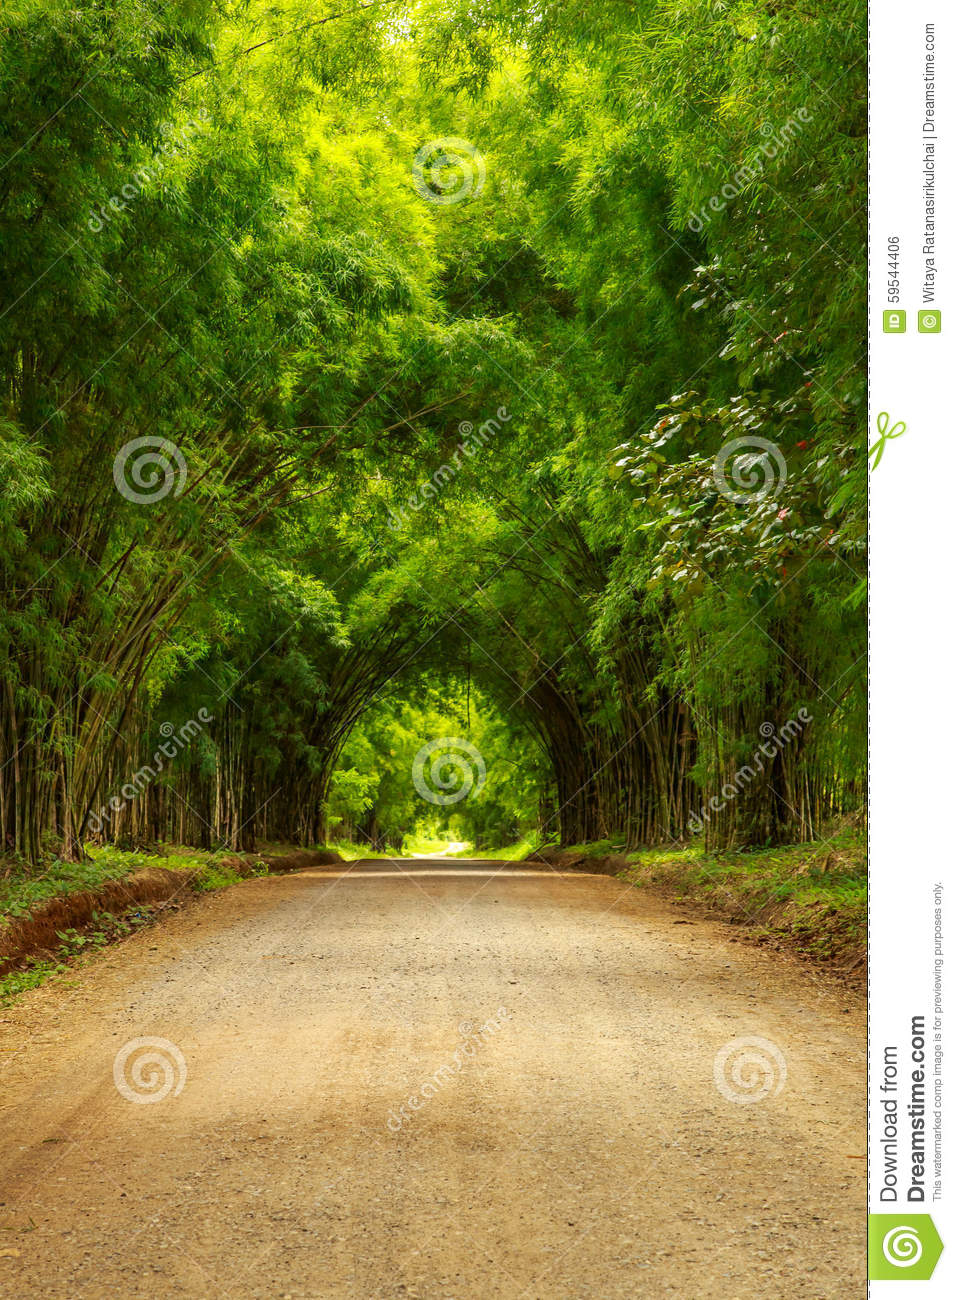 bamboo tunnel scenery background stock photo - image of japan